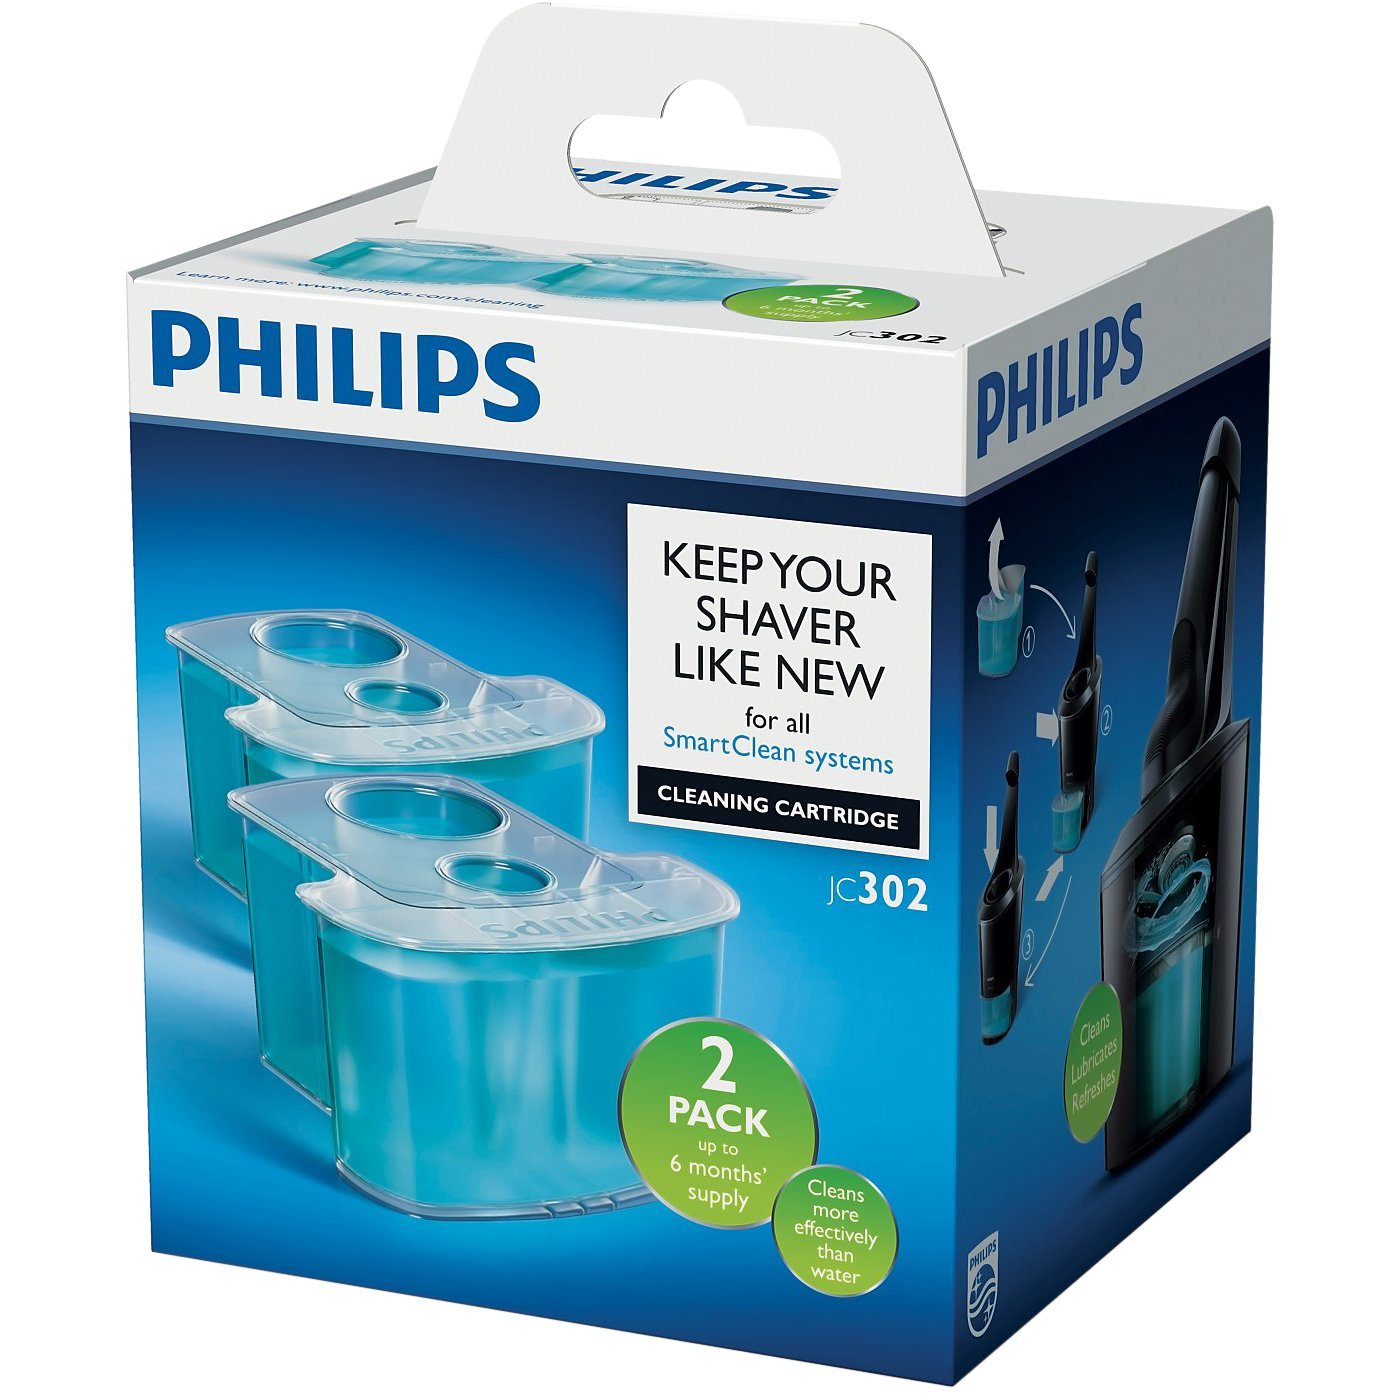 Philips SmartClean Cartridge - Pack of 2 JC302/50